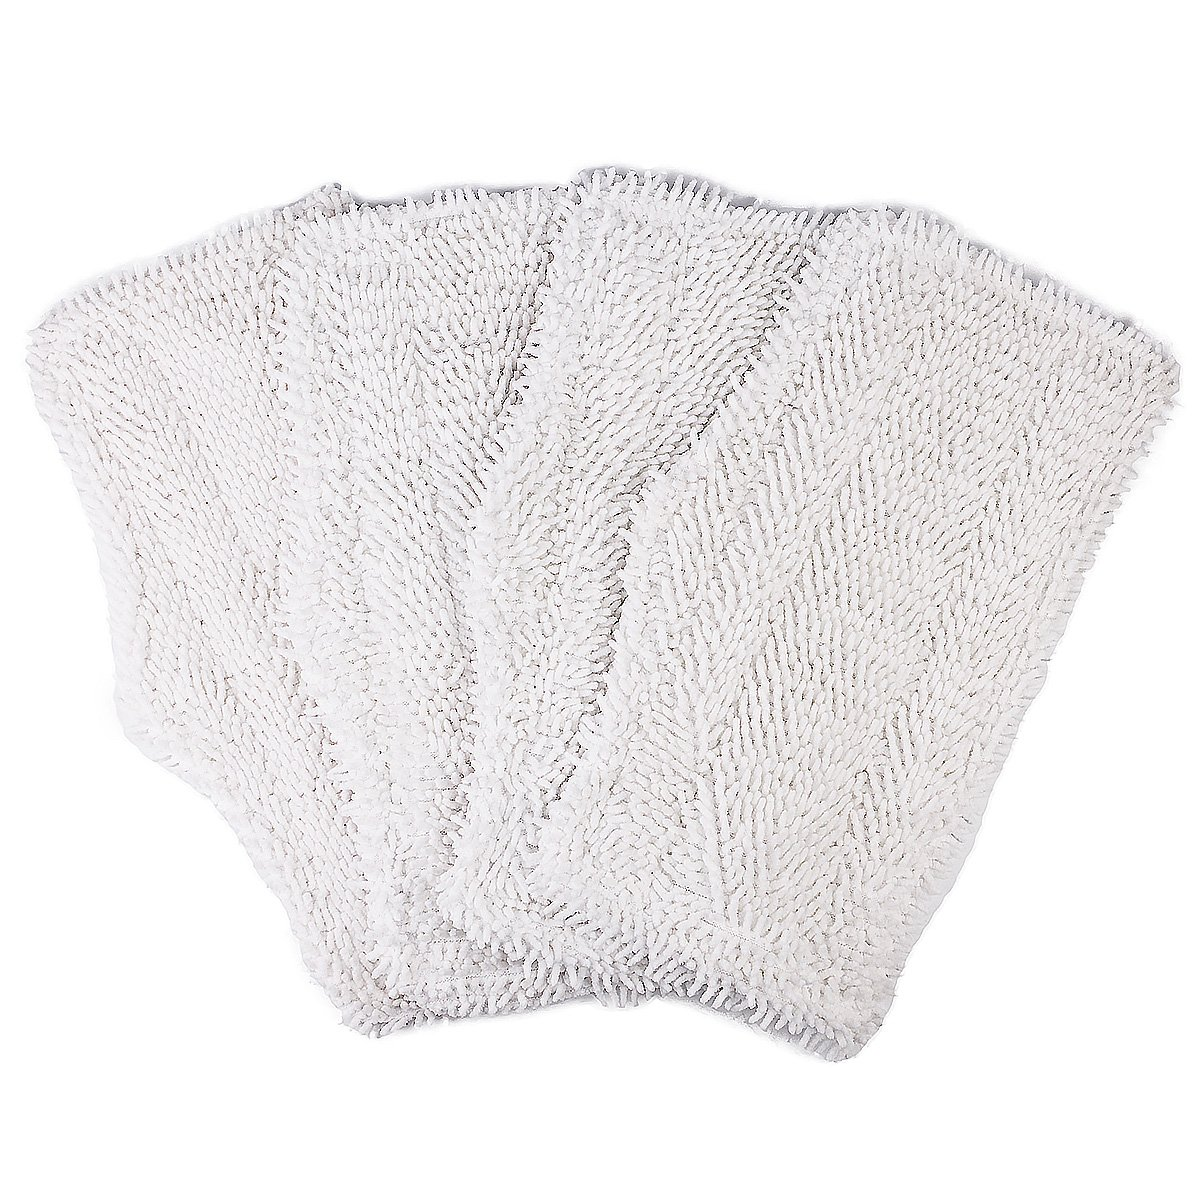 Flammi 4 Pack Replacement Washable Cleaning Pads for Shark Steam & Spray Mop SK410, SK435CO, SK460, SK140, SK141, S3101, S3250, S3251